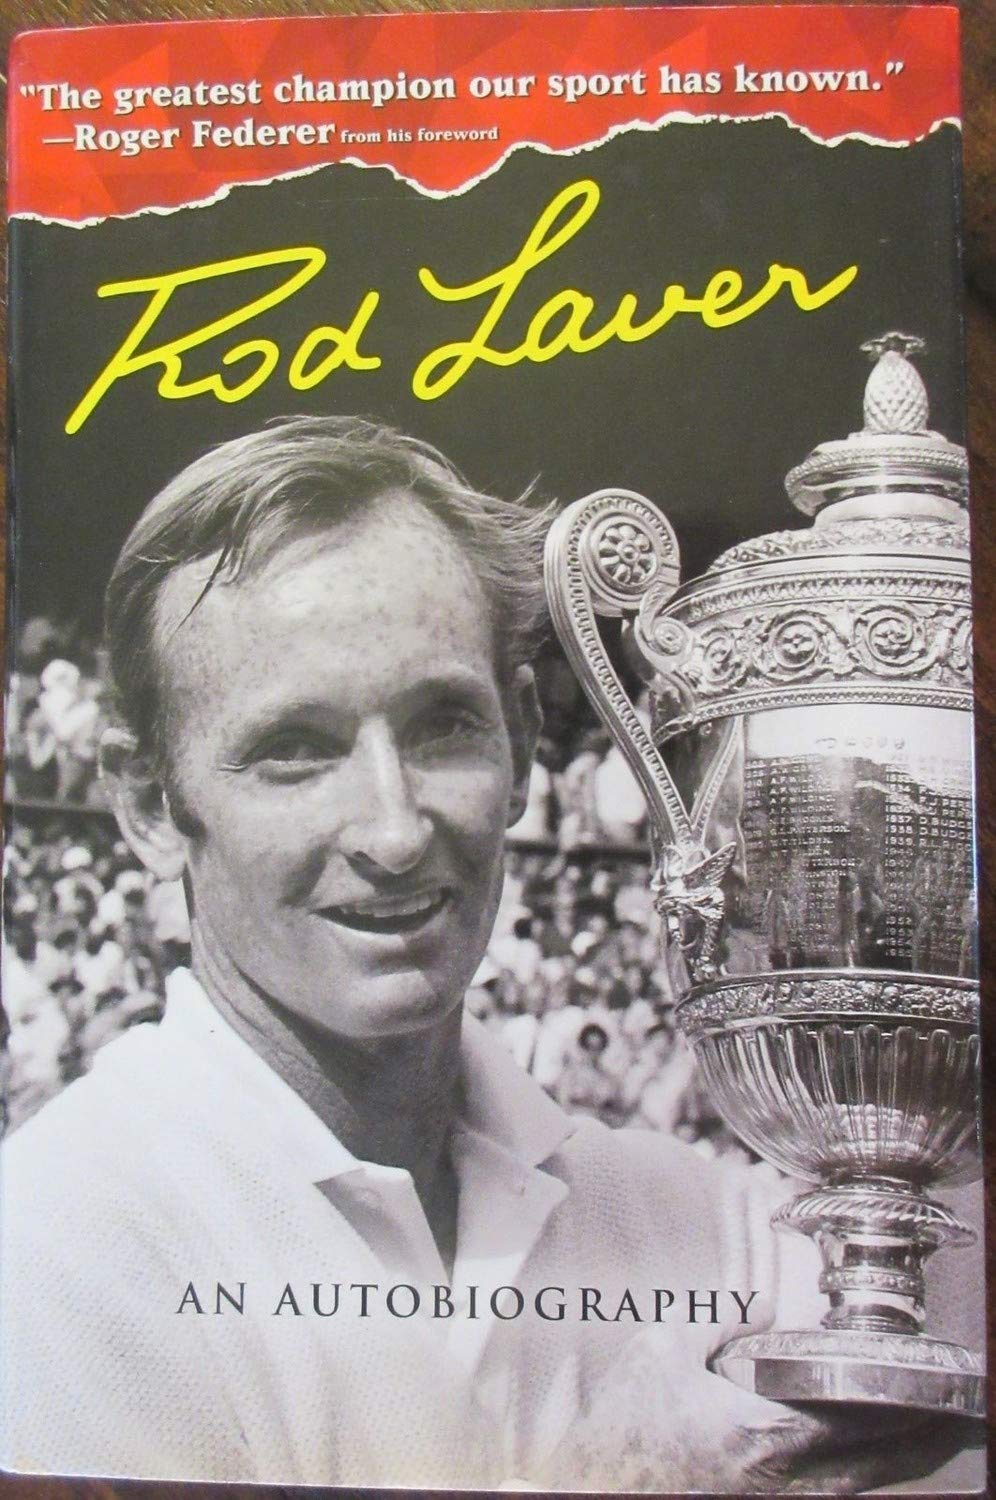 Rod Laver Autographed Signed Book Beckett Authentic